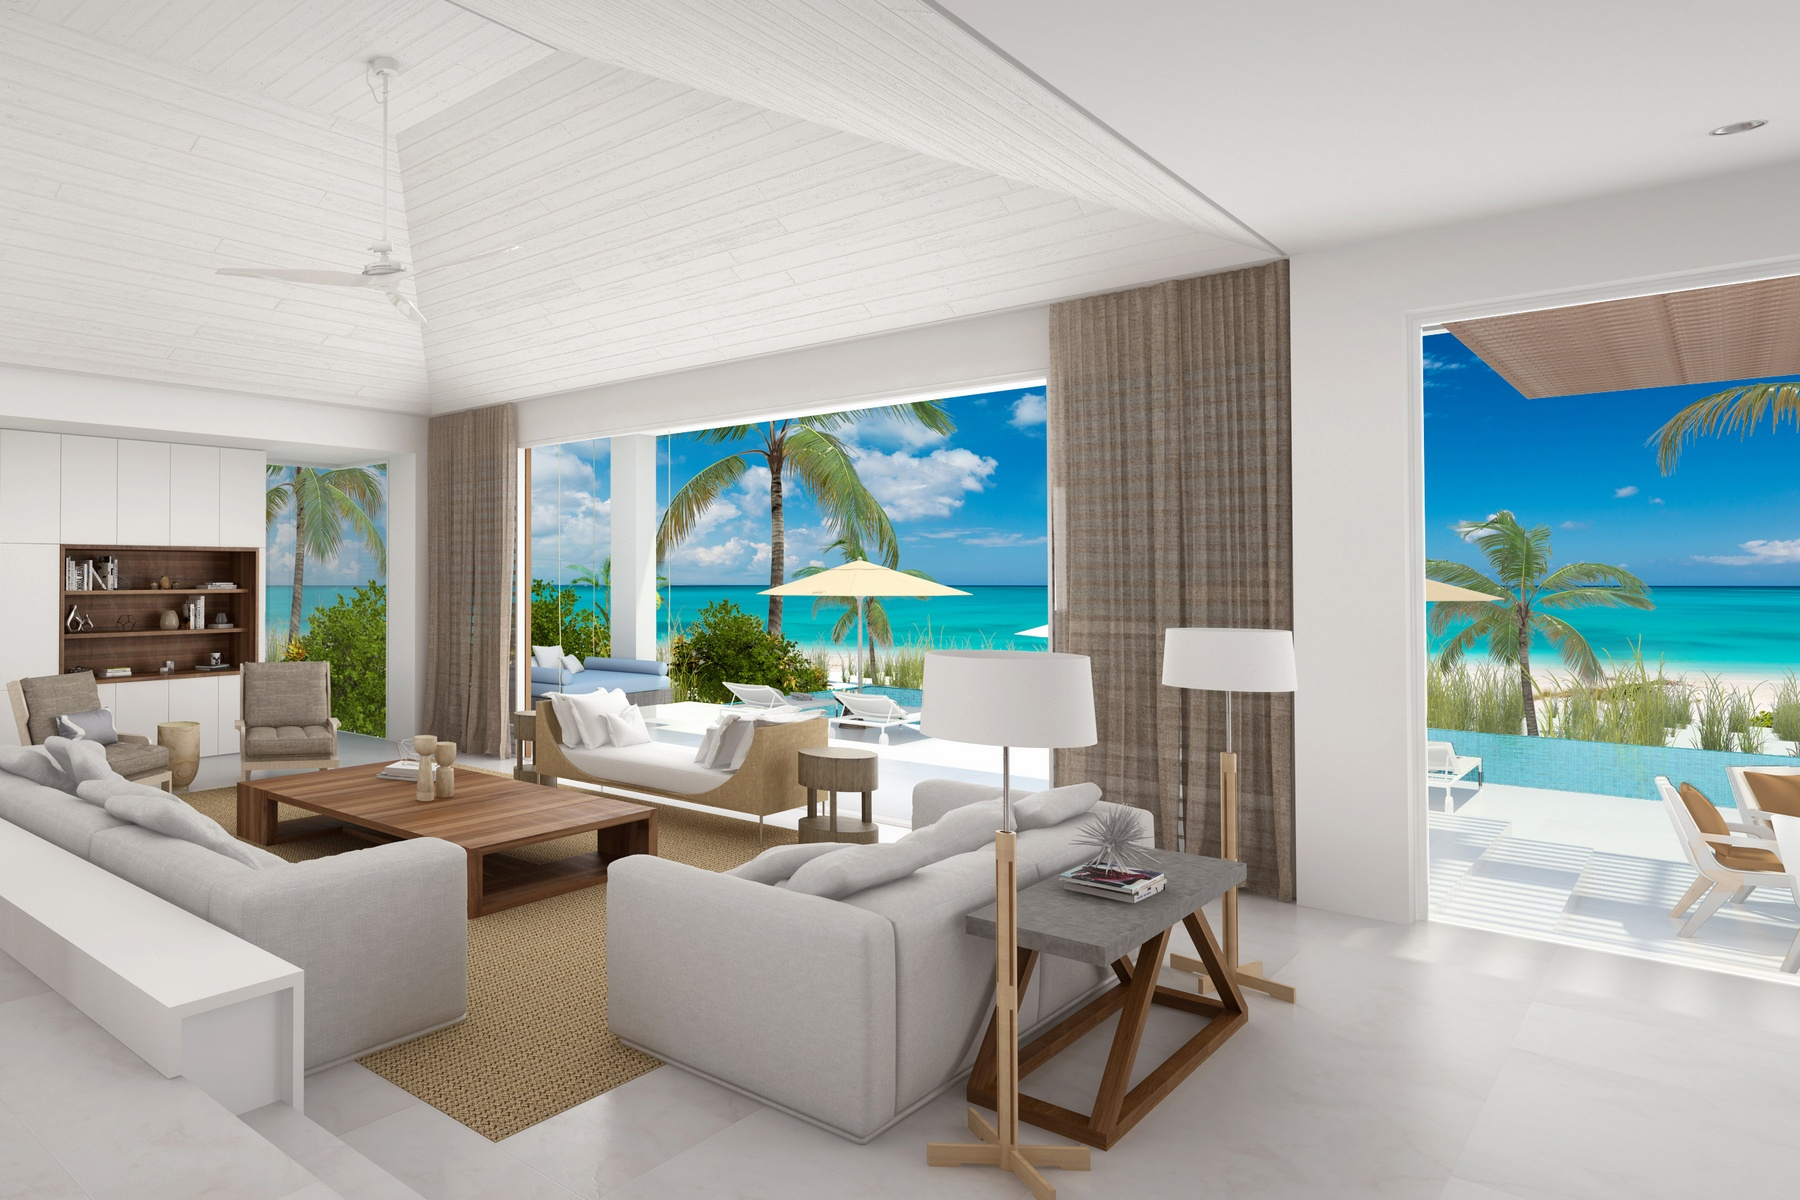 Additional photo for property listing at Beach Enclave Grace Bay - Design A Beach Enclave Grace Bay, Lot 10 - Design A 格蕾斯湾, 普罗维登夏 TKCA 1ZZ 特克斯和凯科斯群岛